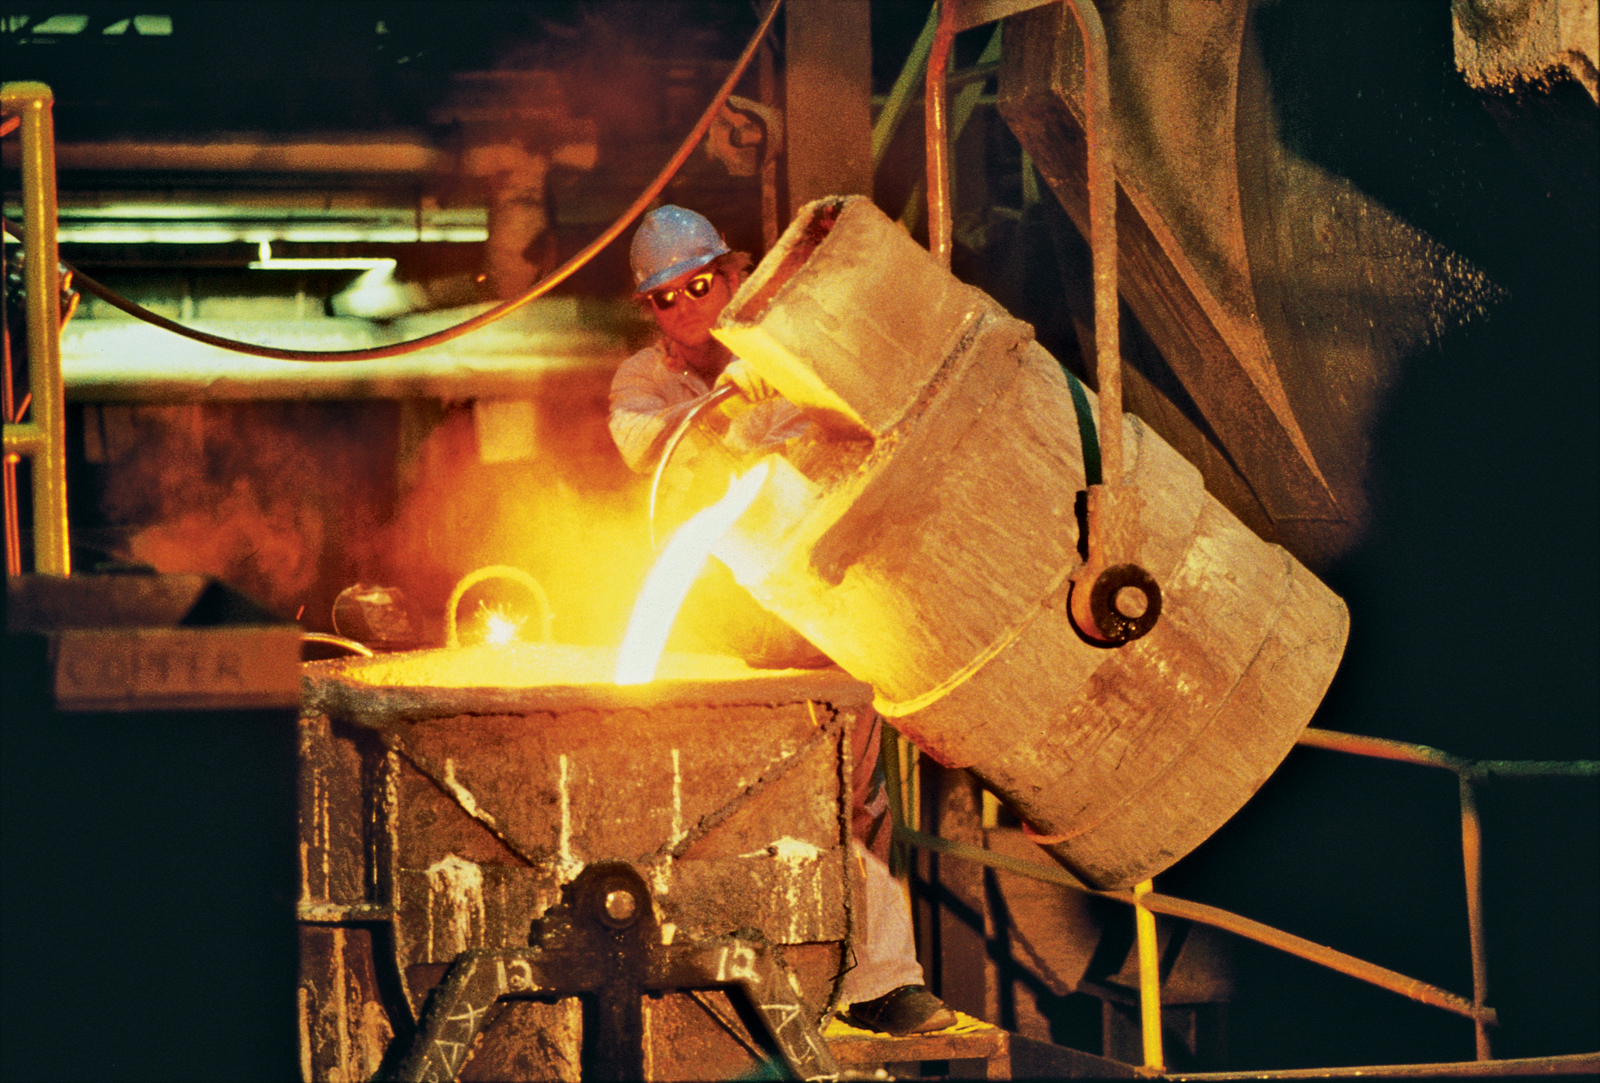 Cast-iron process at the Kohler manufacturing center